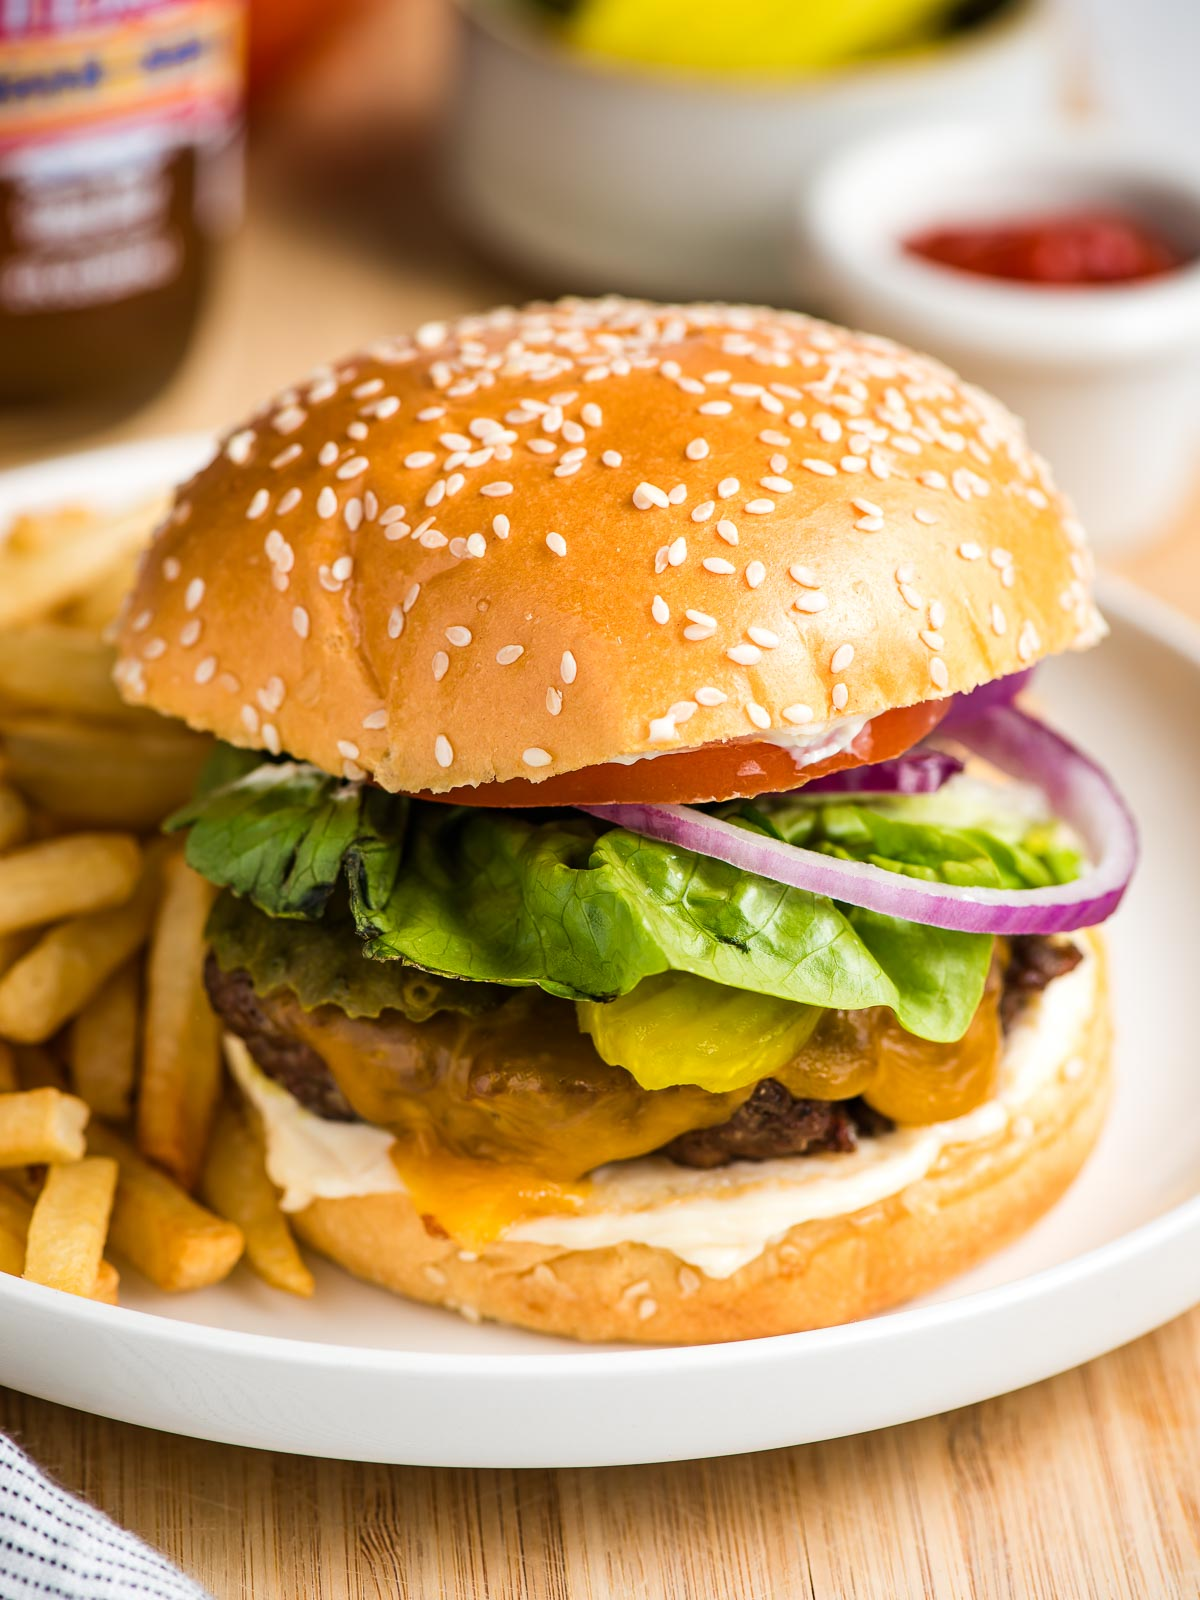 An air fryer hamburger on a plate with fries.